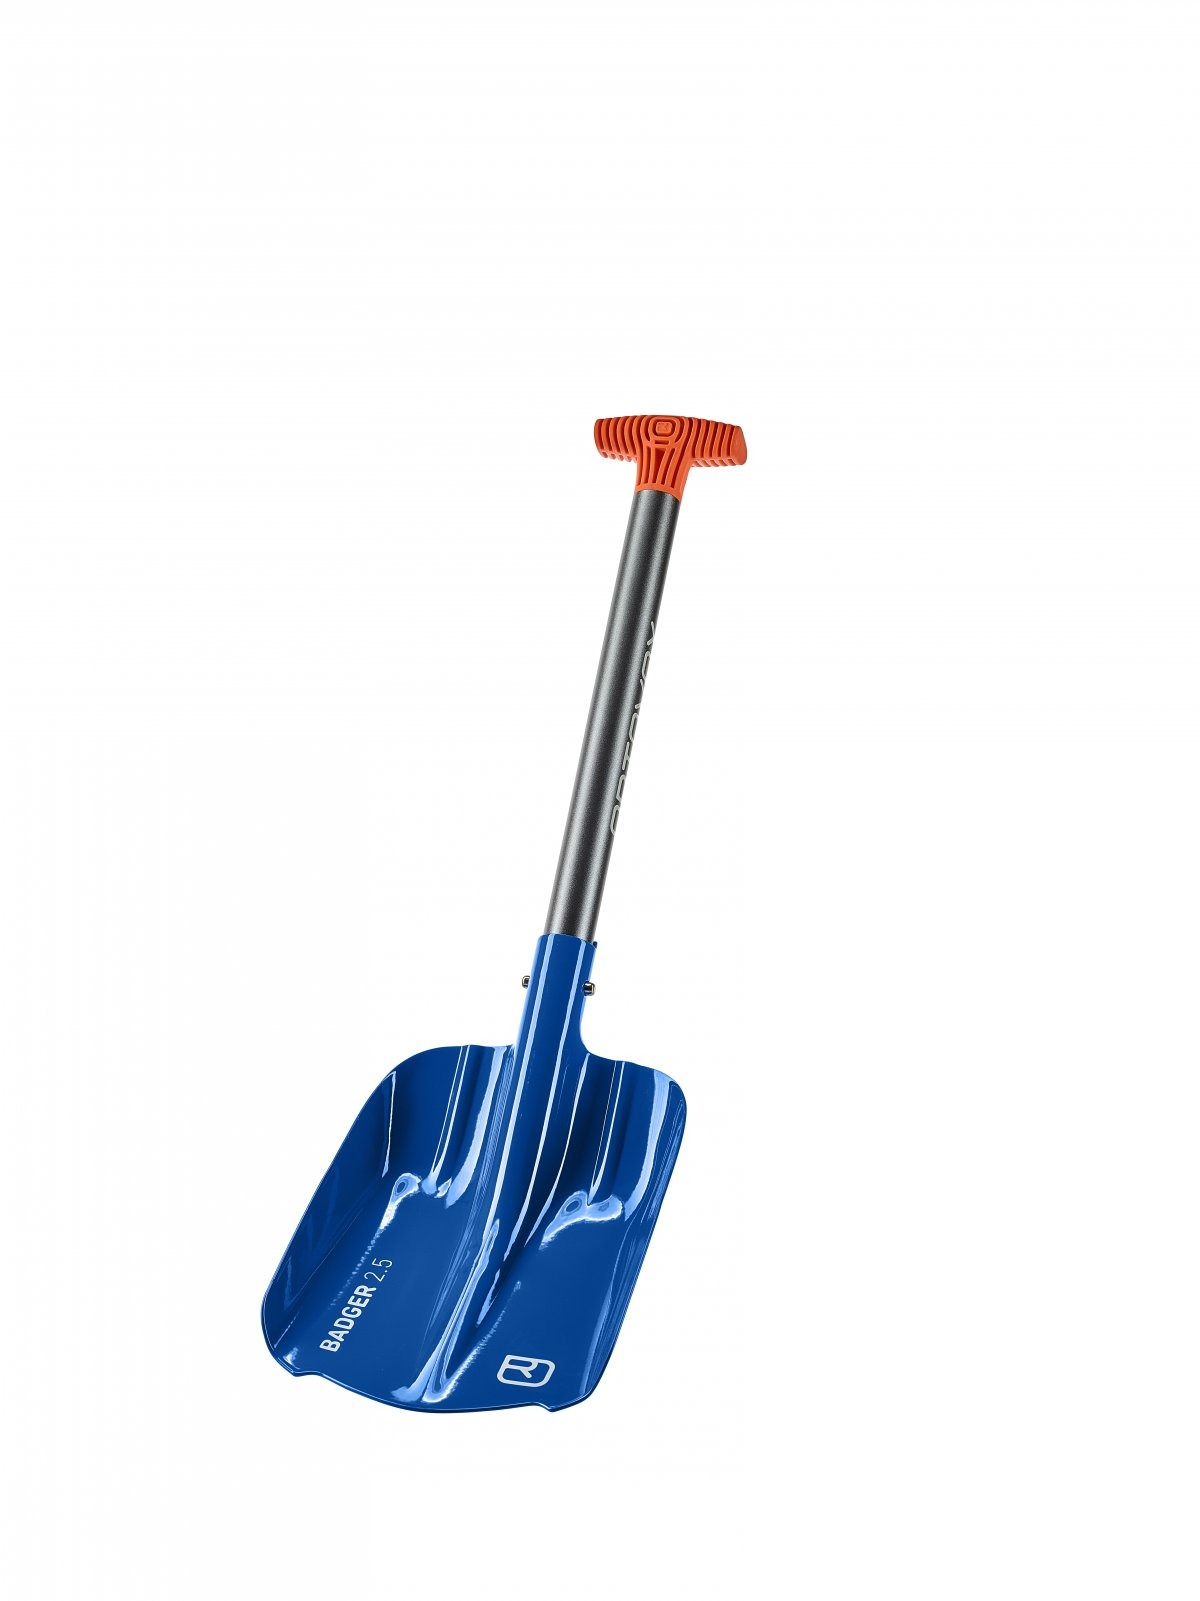 Ortovox Badger Shovel - Featuring Ergonomic Hybrid Grip